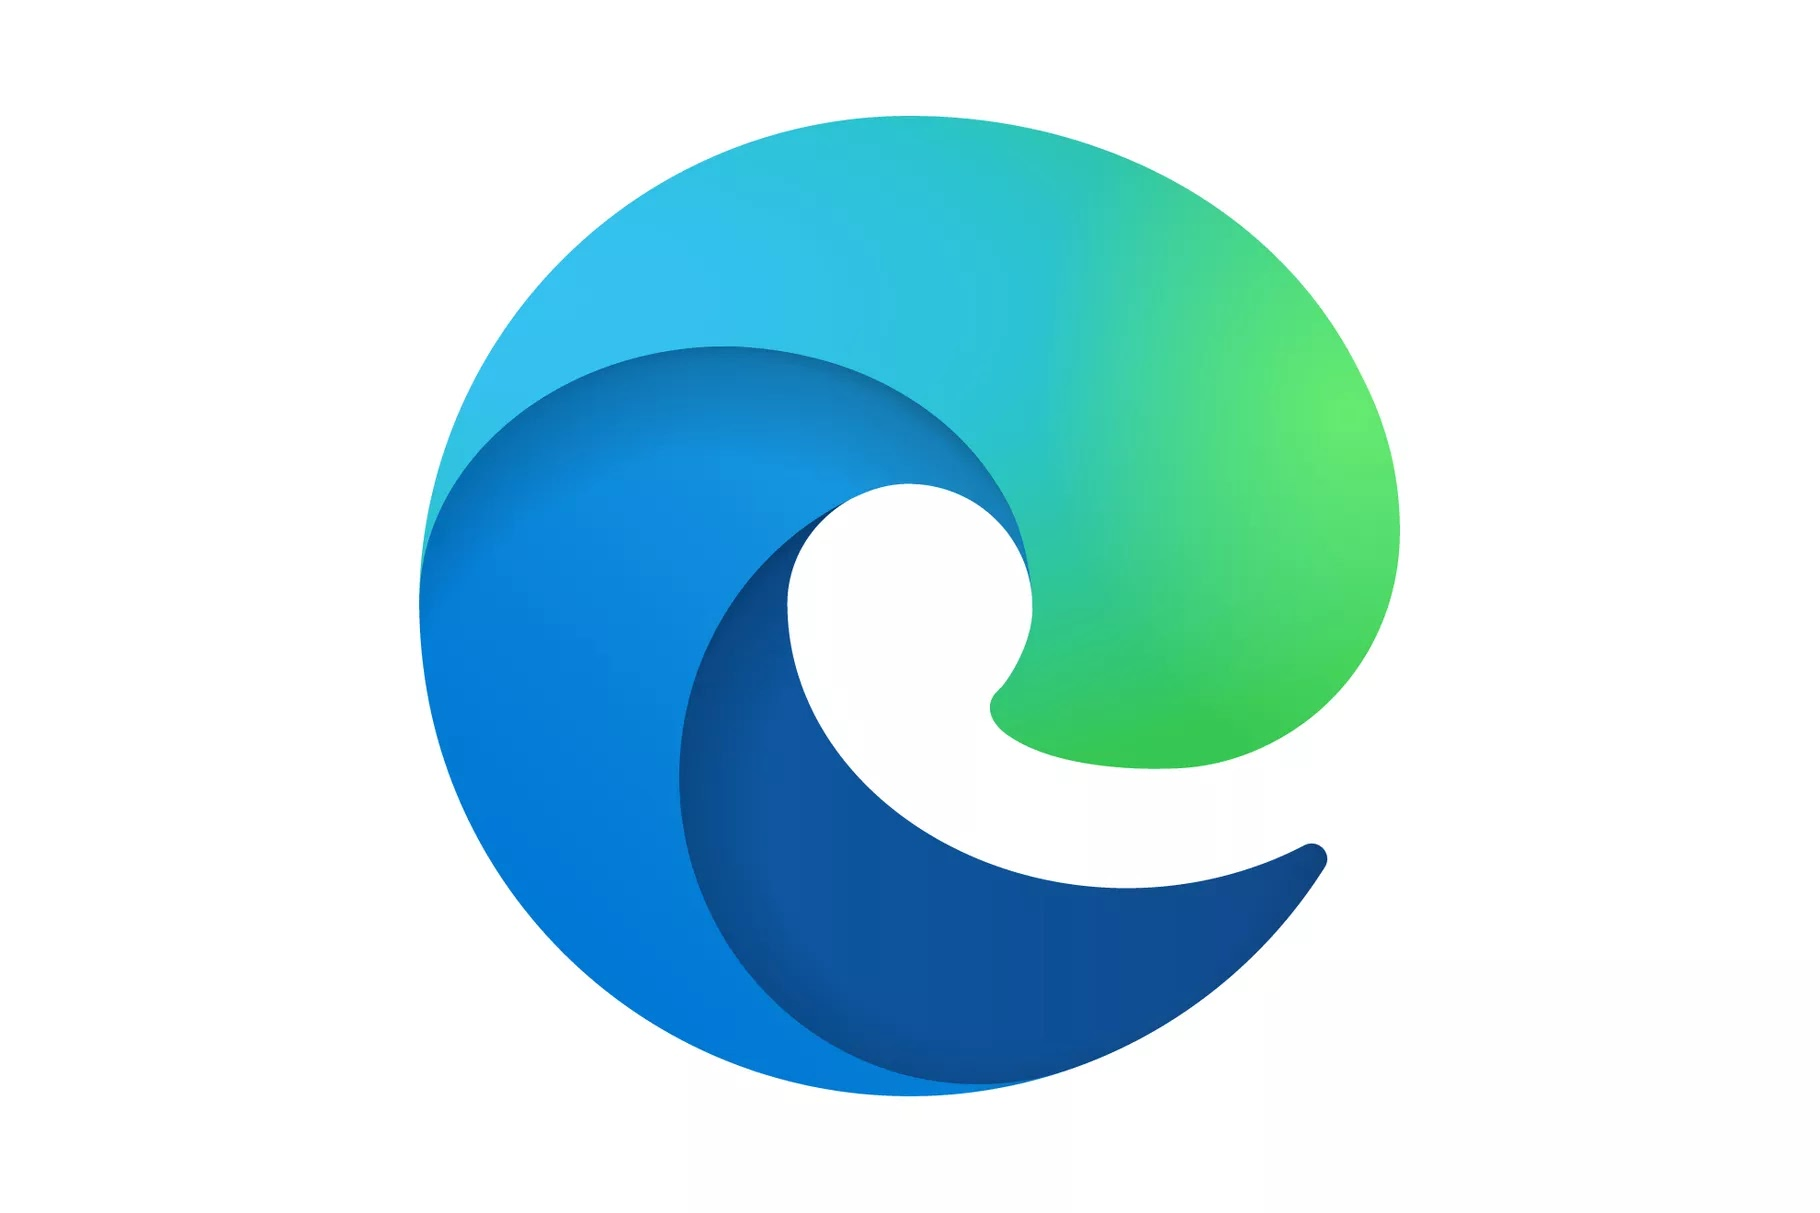 Chromium-based Edge browser new logo